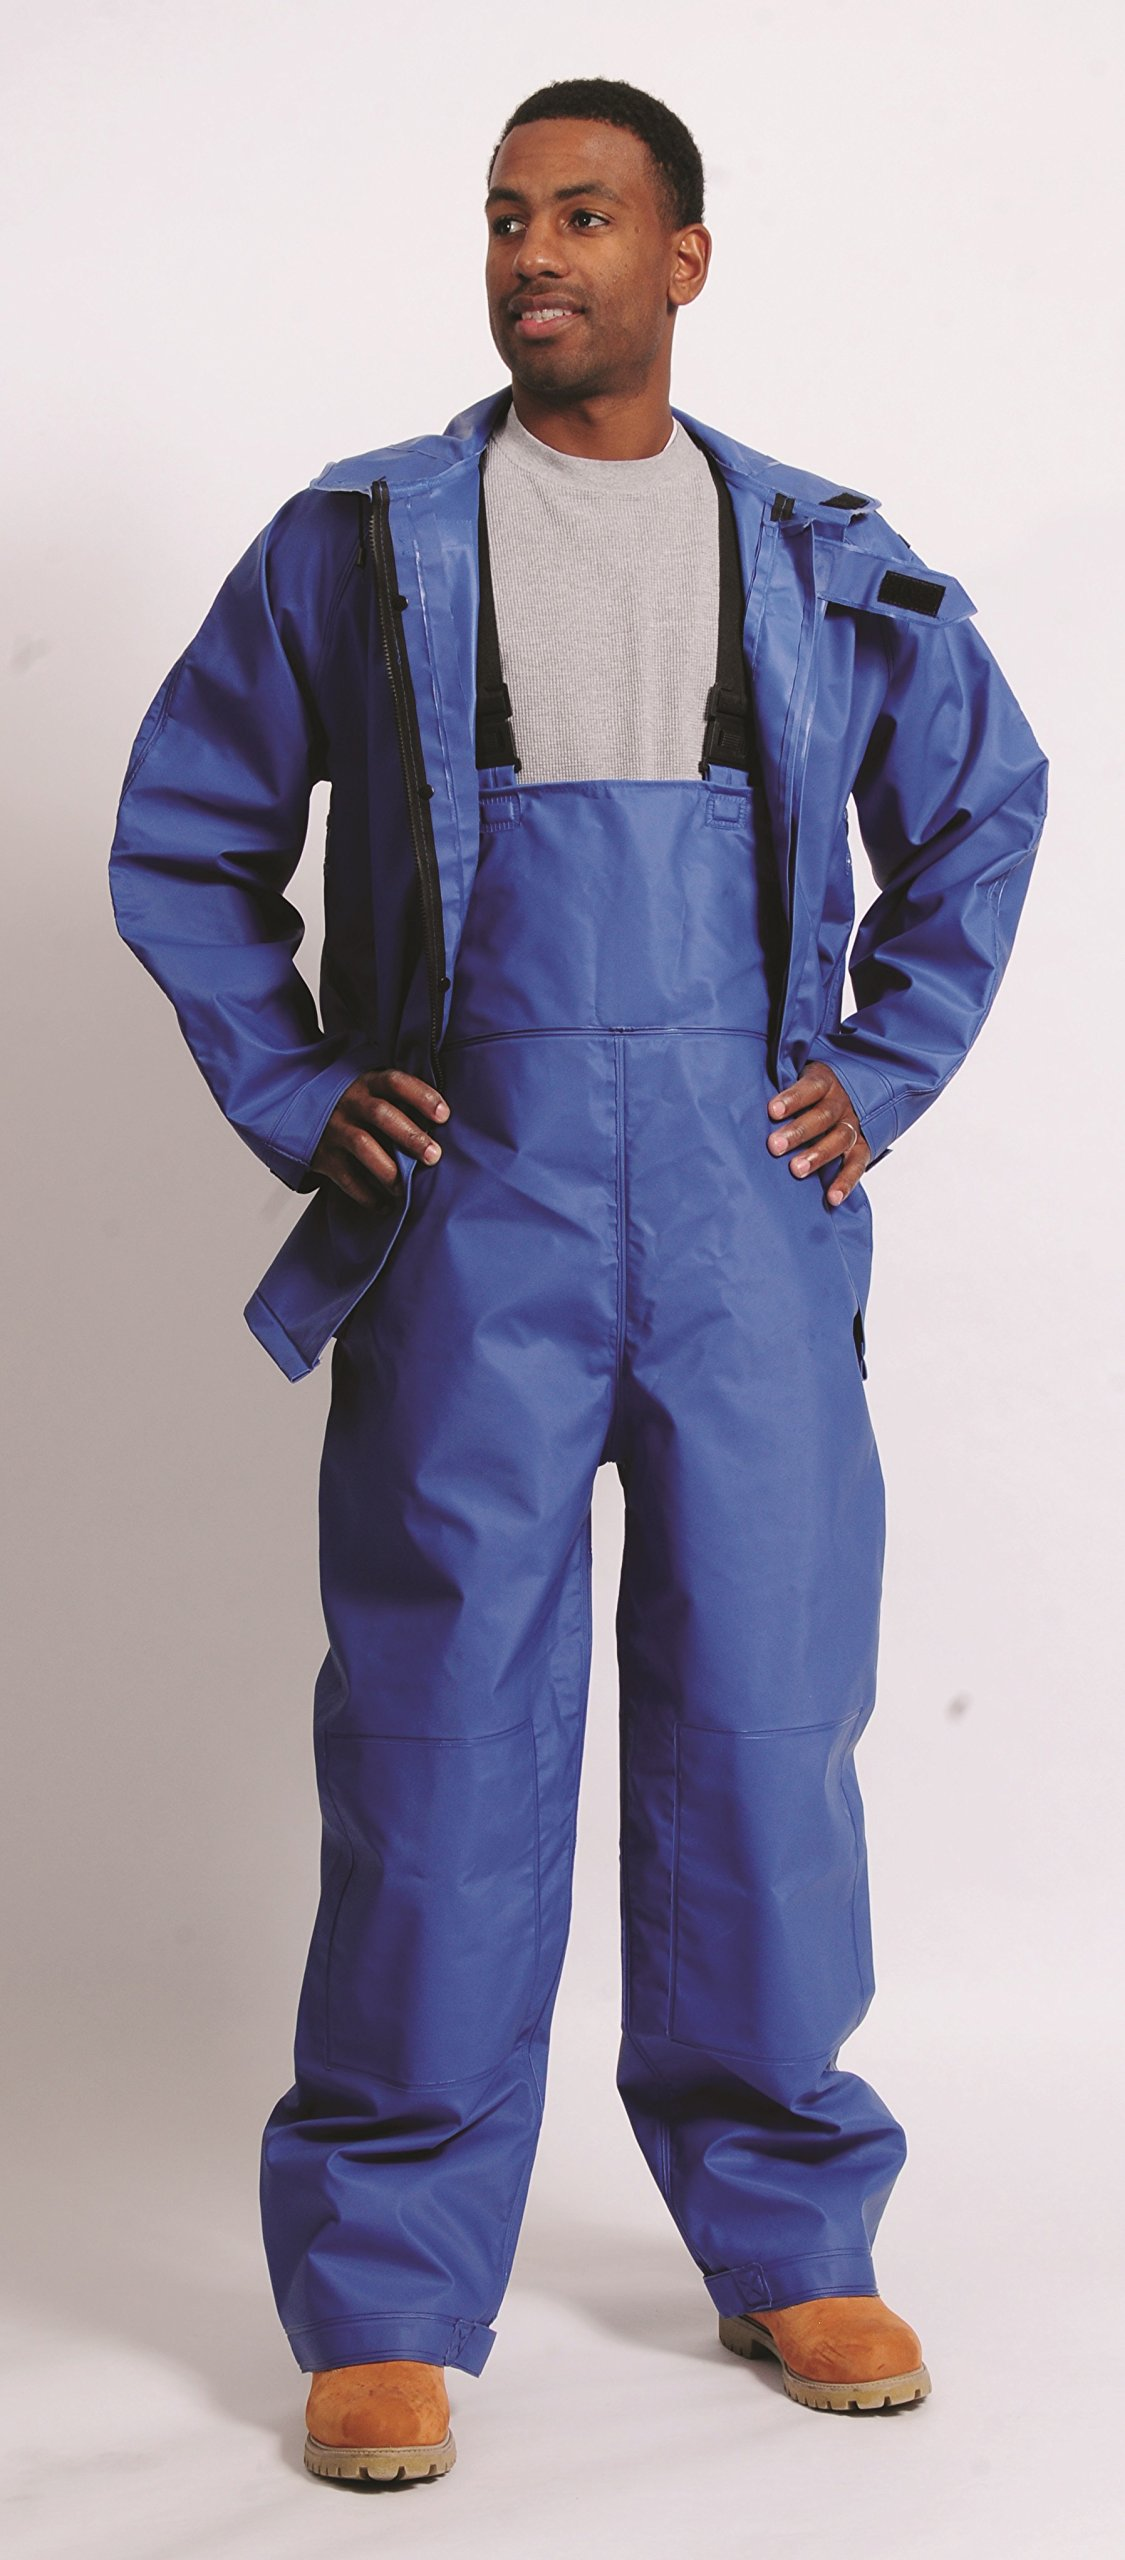 Galeton 7954-XL-BL 7954 Repel Rainwear 0.50 mm PVC 3-Layer Fishermans Rain Suit, Blue, X-Large